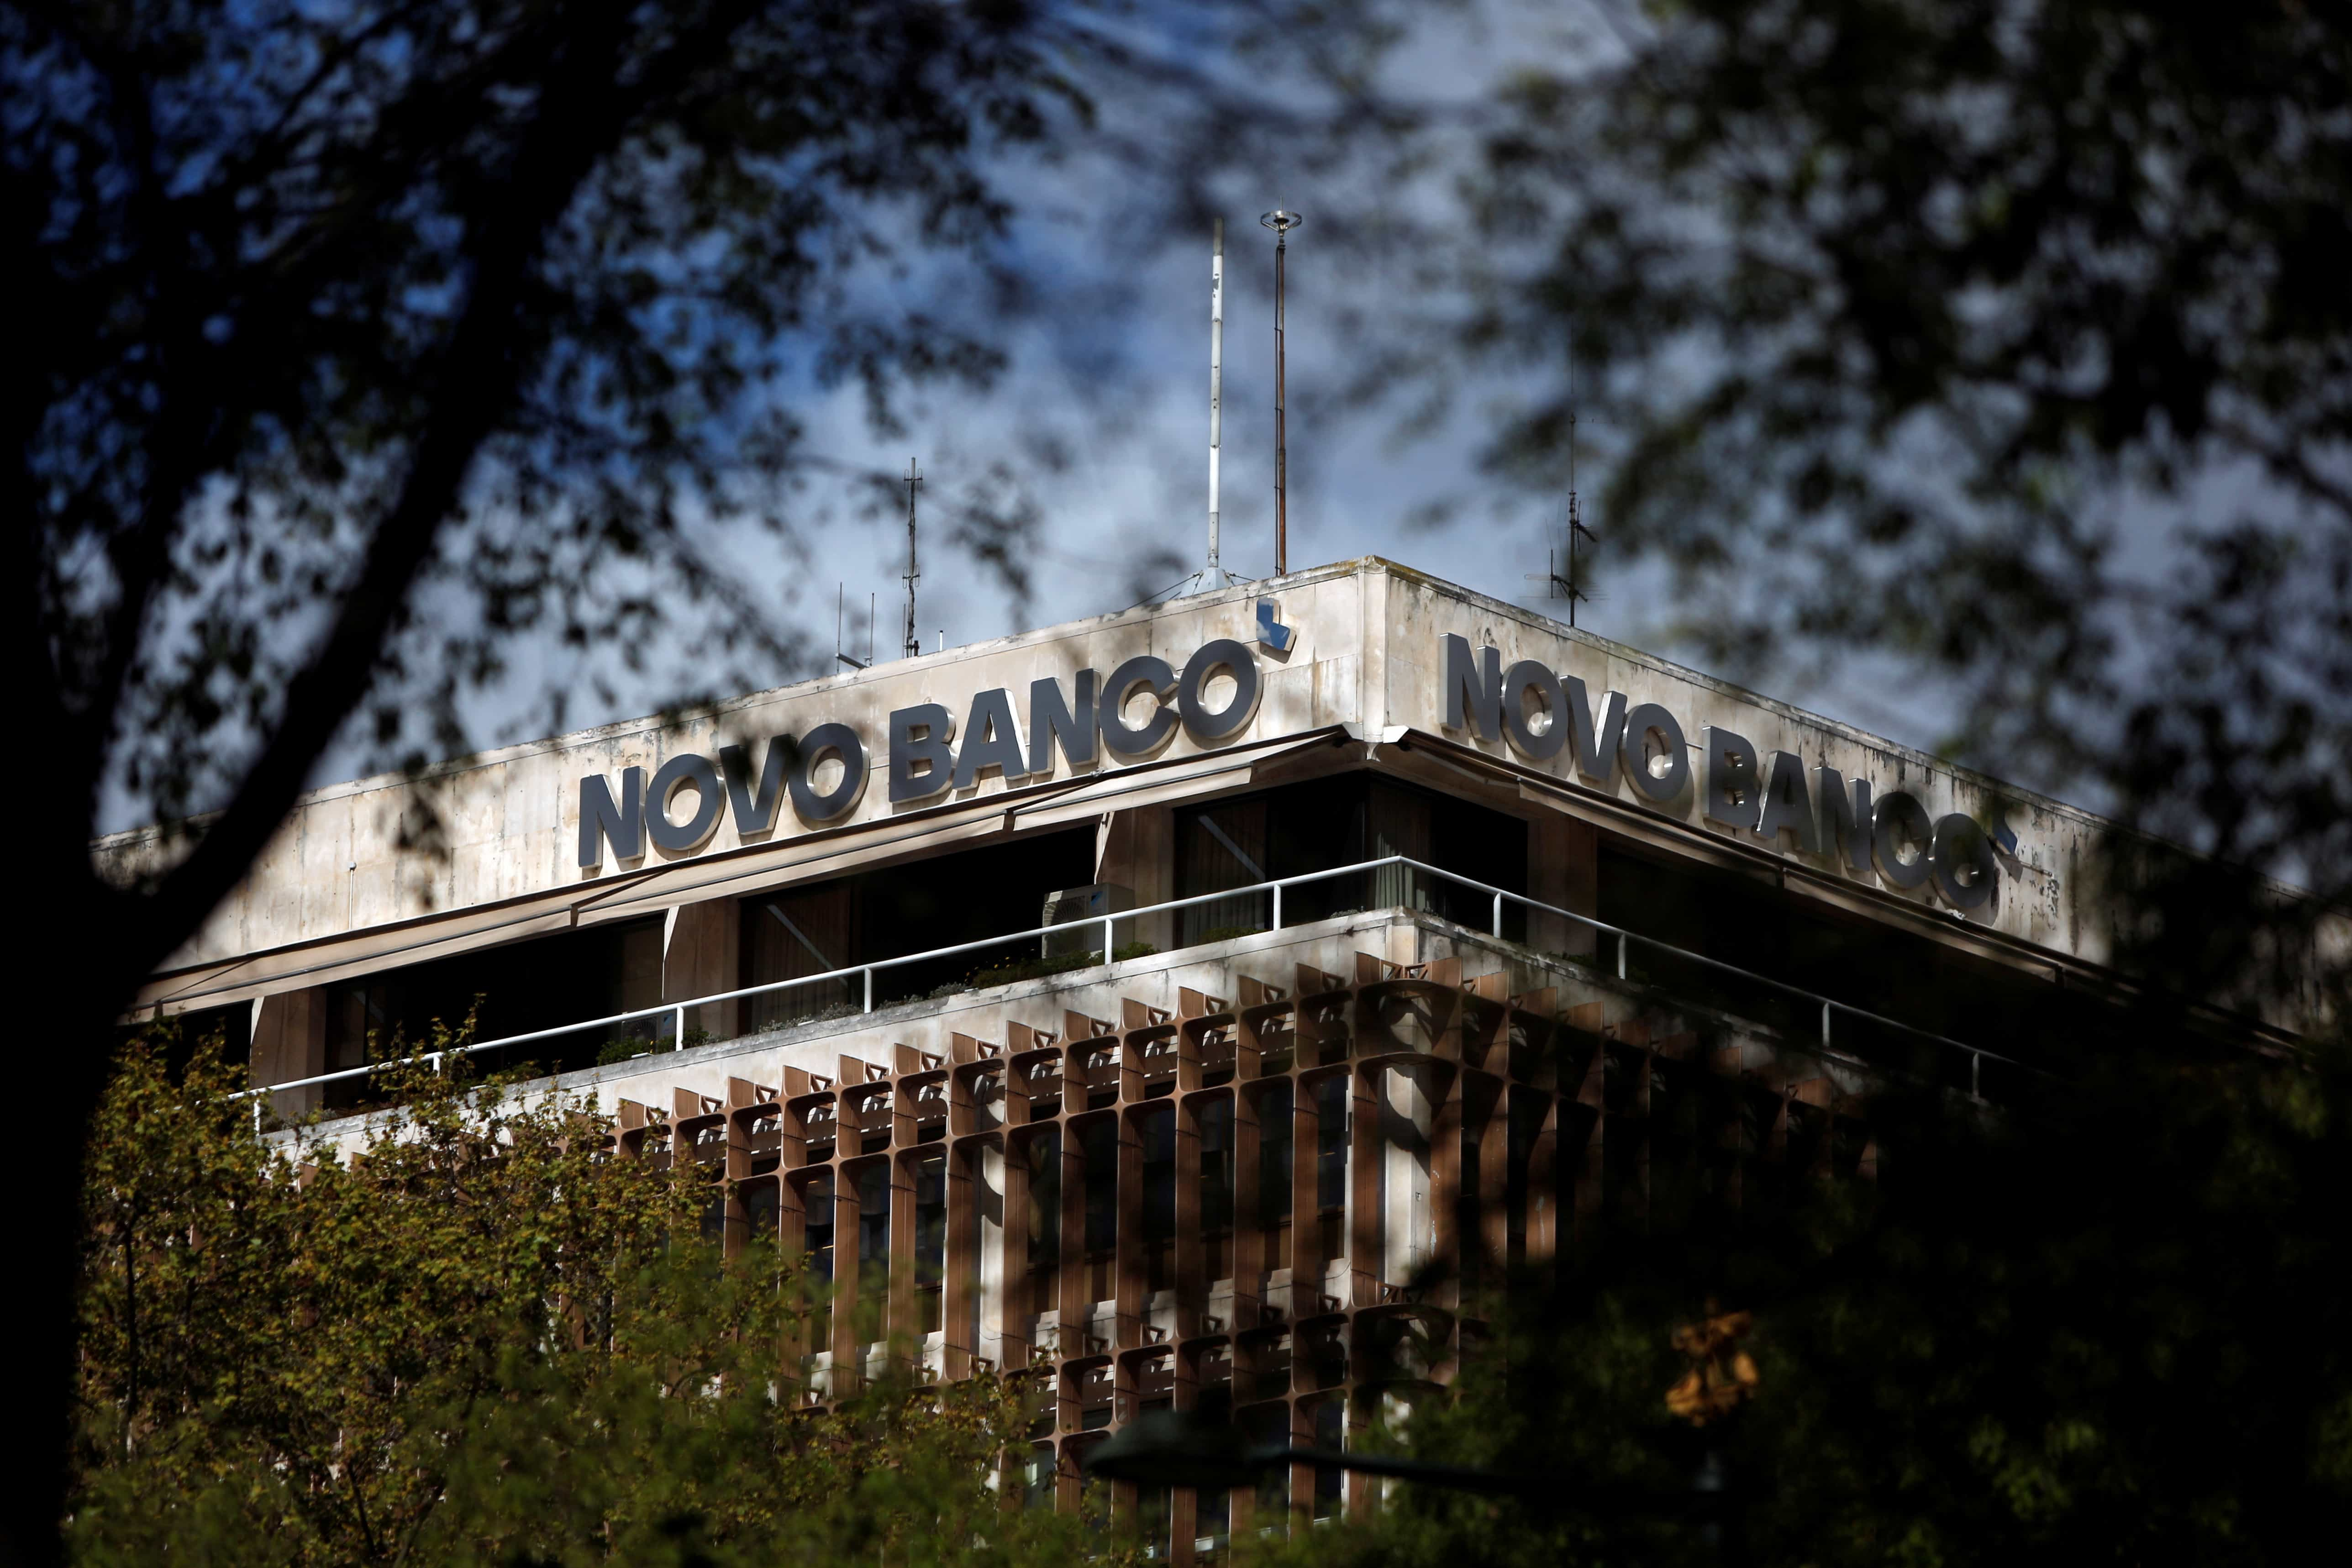 Recapitalizar Novo Banco levaria défice para 0,7% do PIB